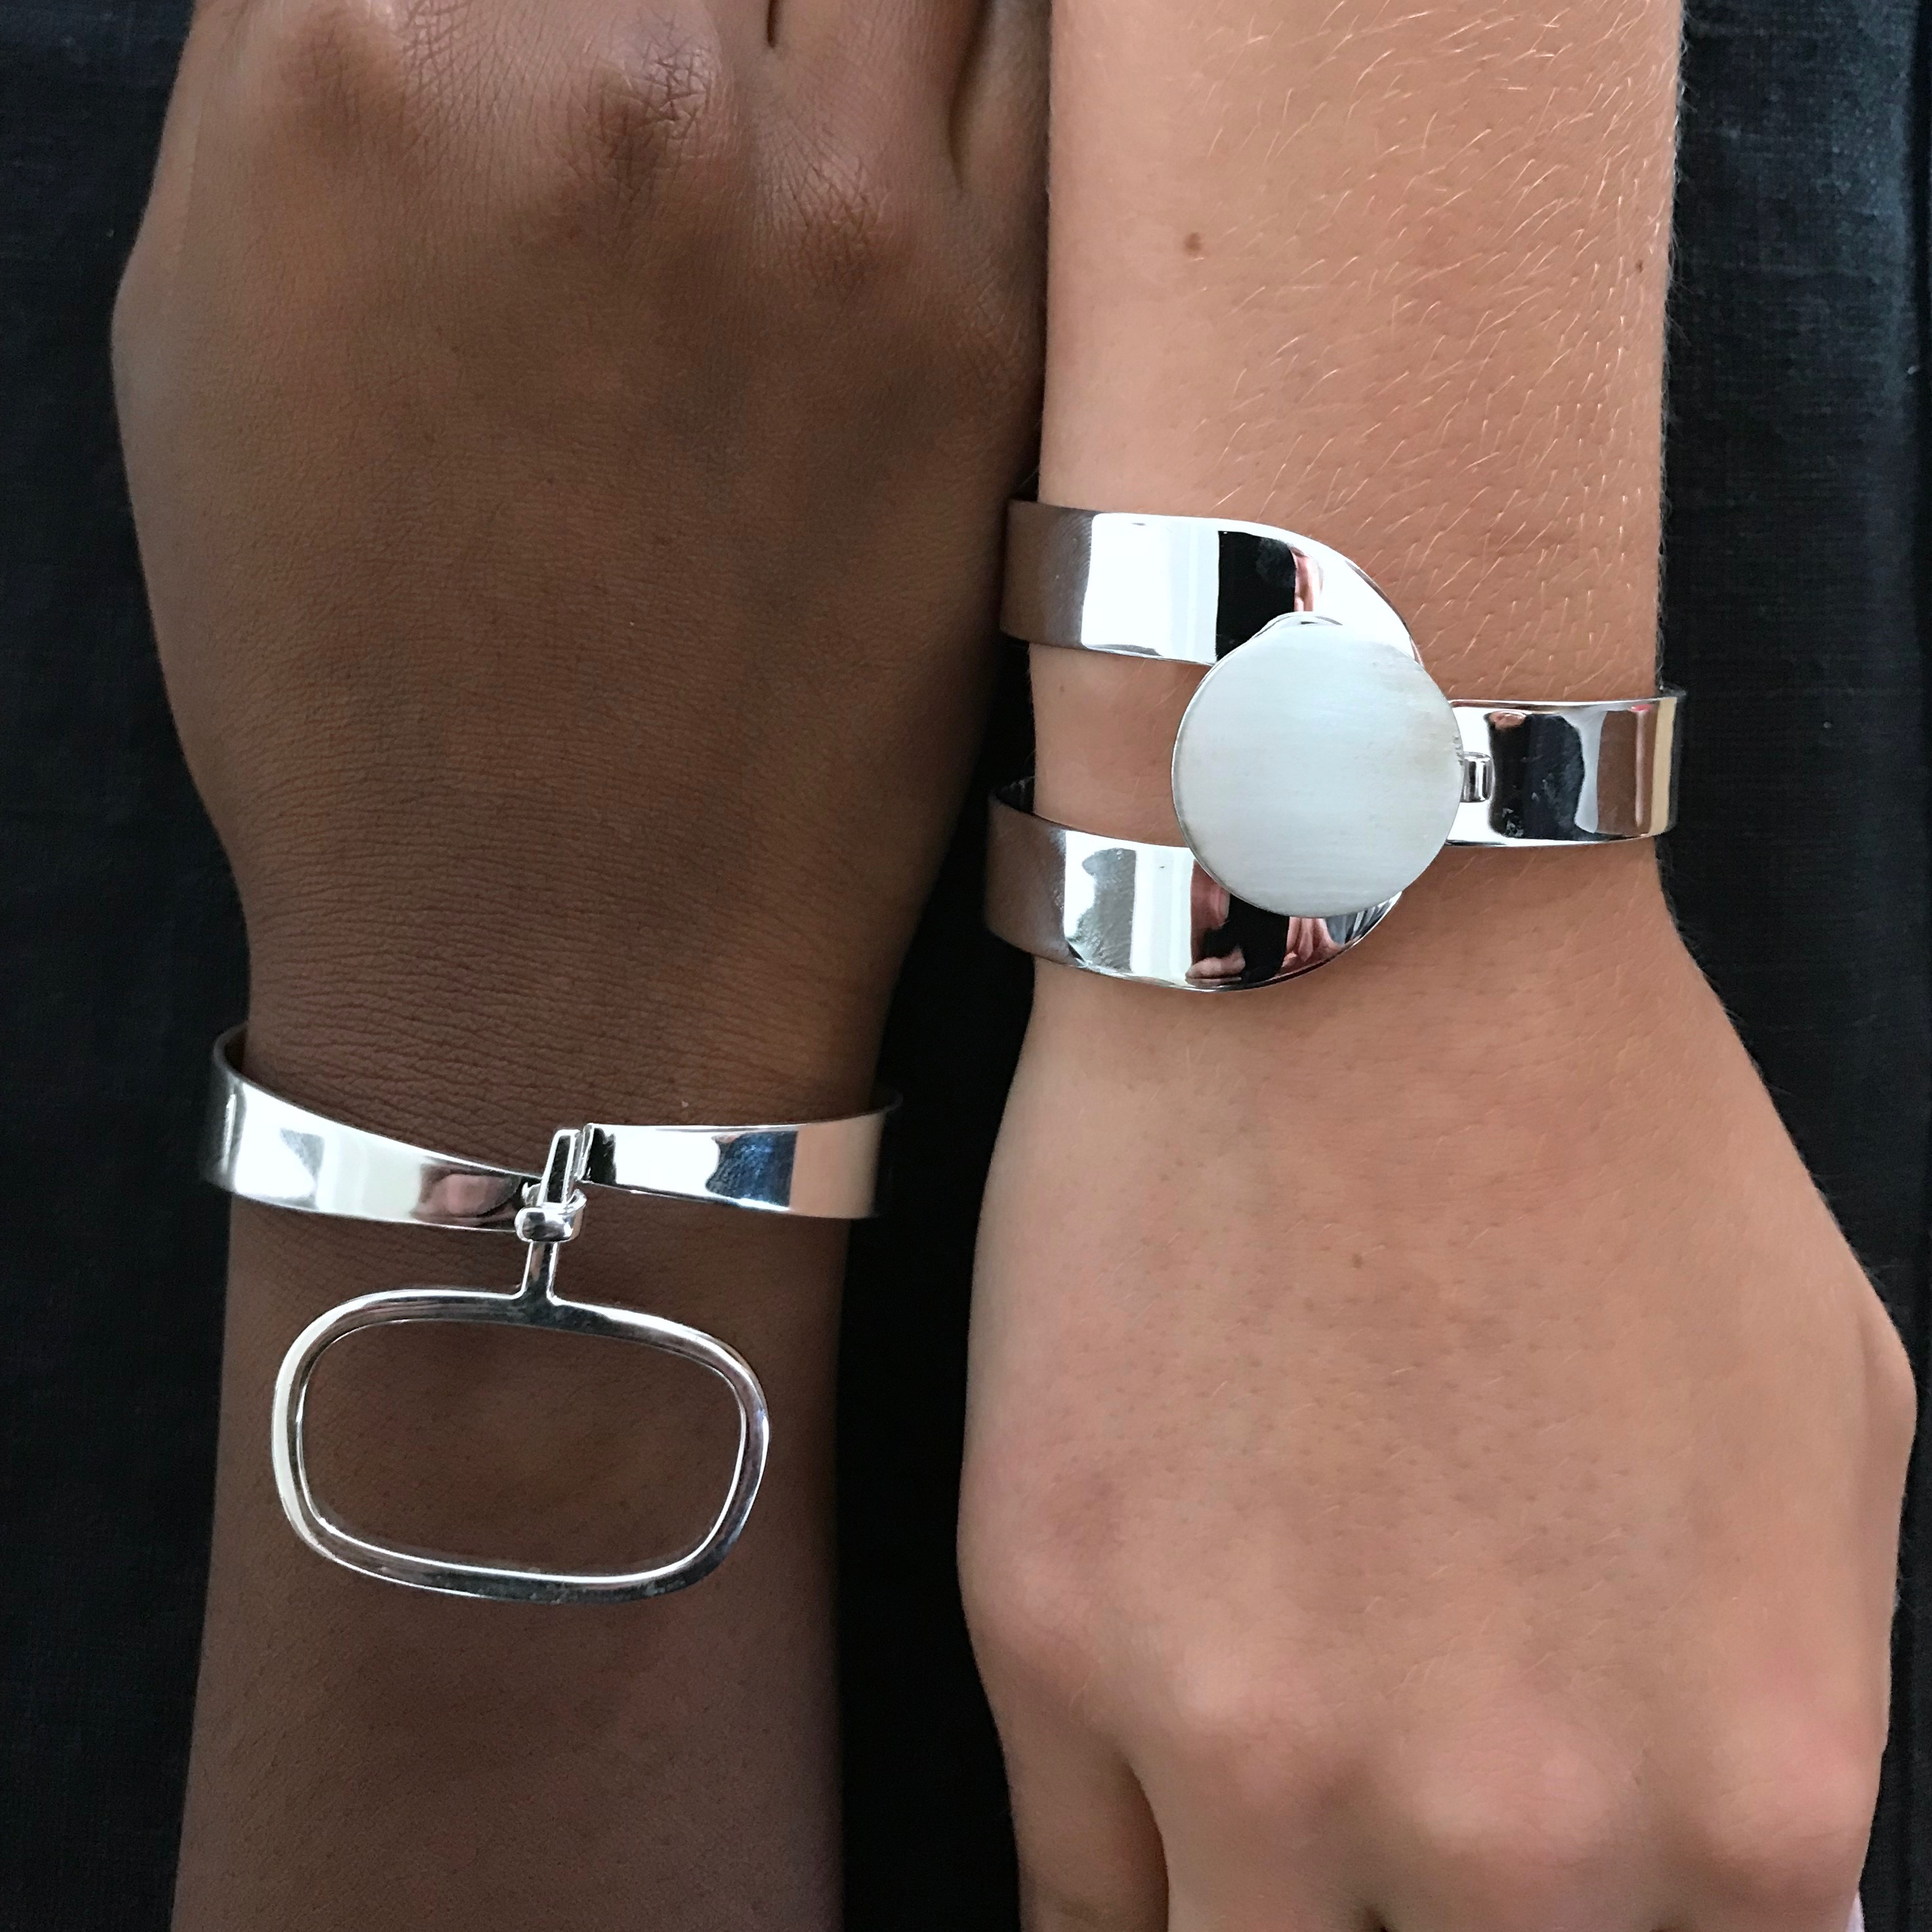 Två stora silverarmband med mjuka 70-talsformer. Two big silver bracelet with soft shapes, inspired by the 70s.